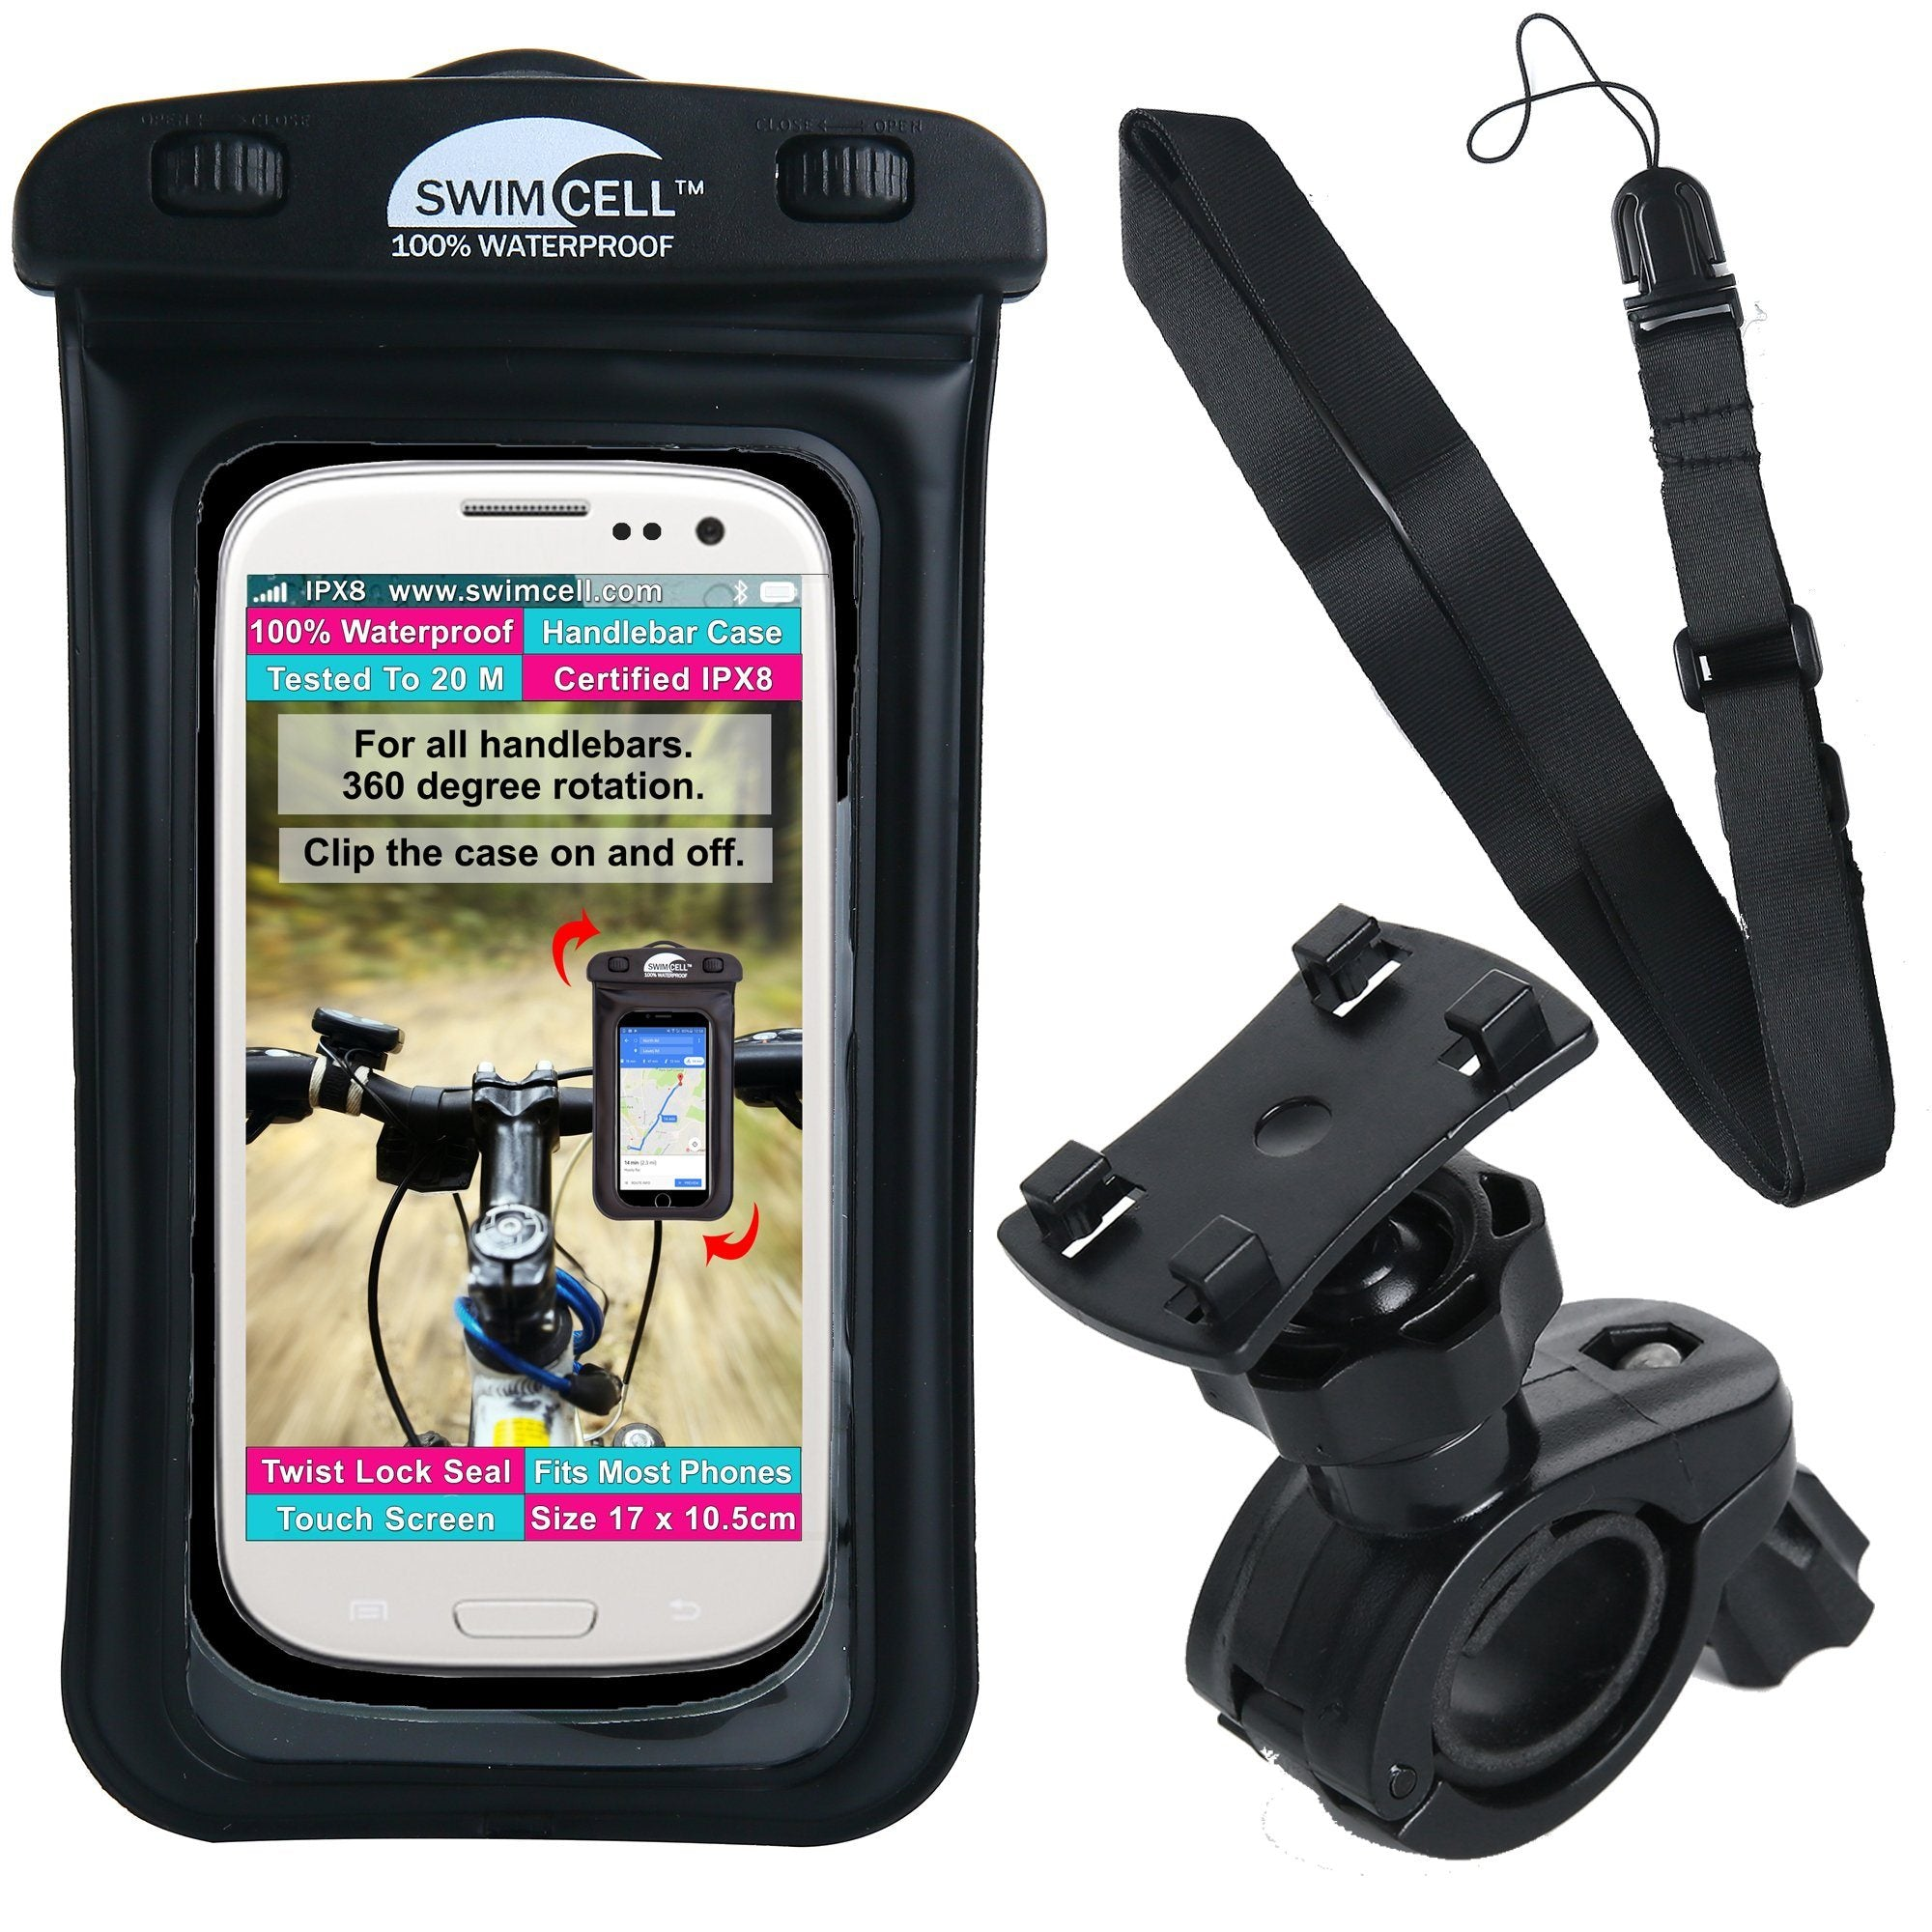 Waterproof Case For Phone With Bicycle Handlebar Mount Just Launched!